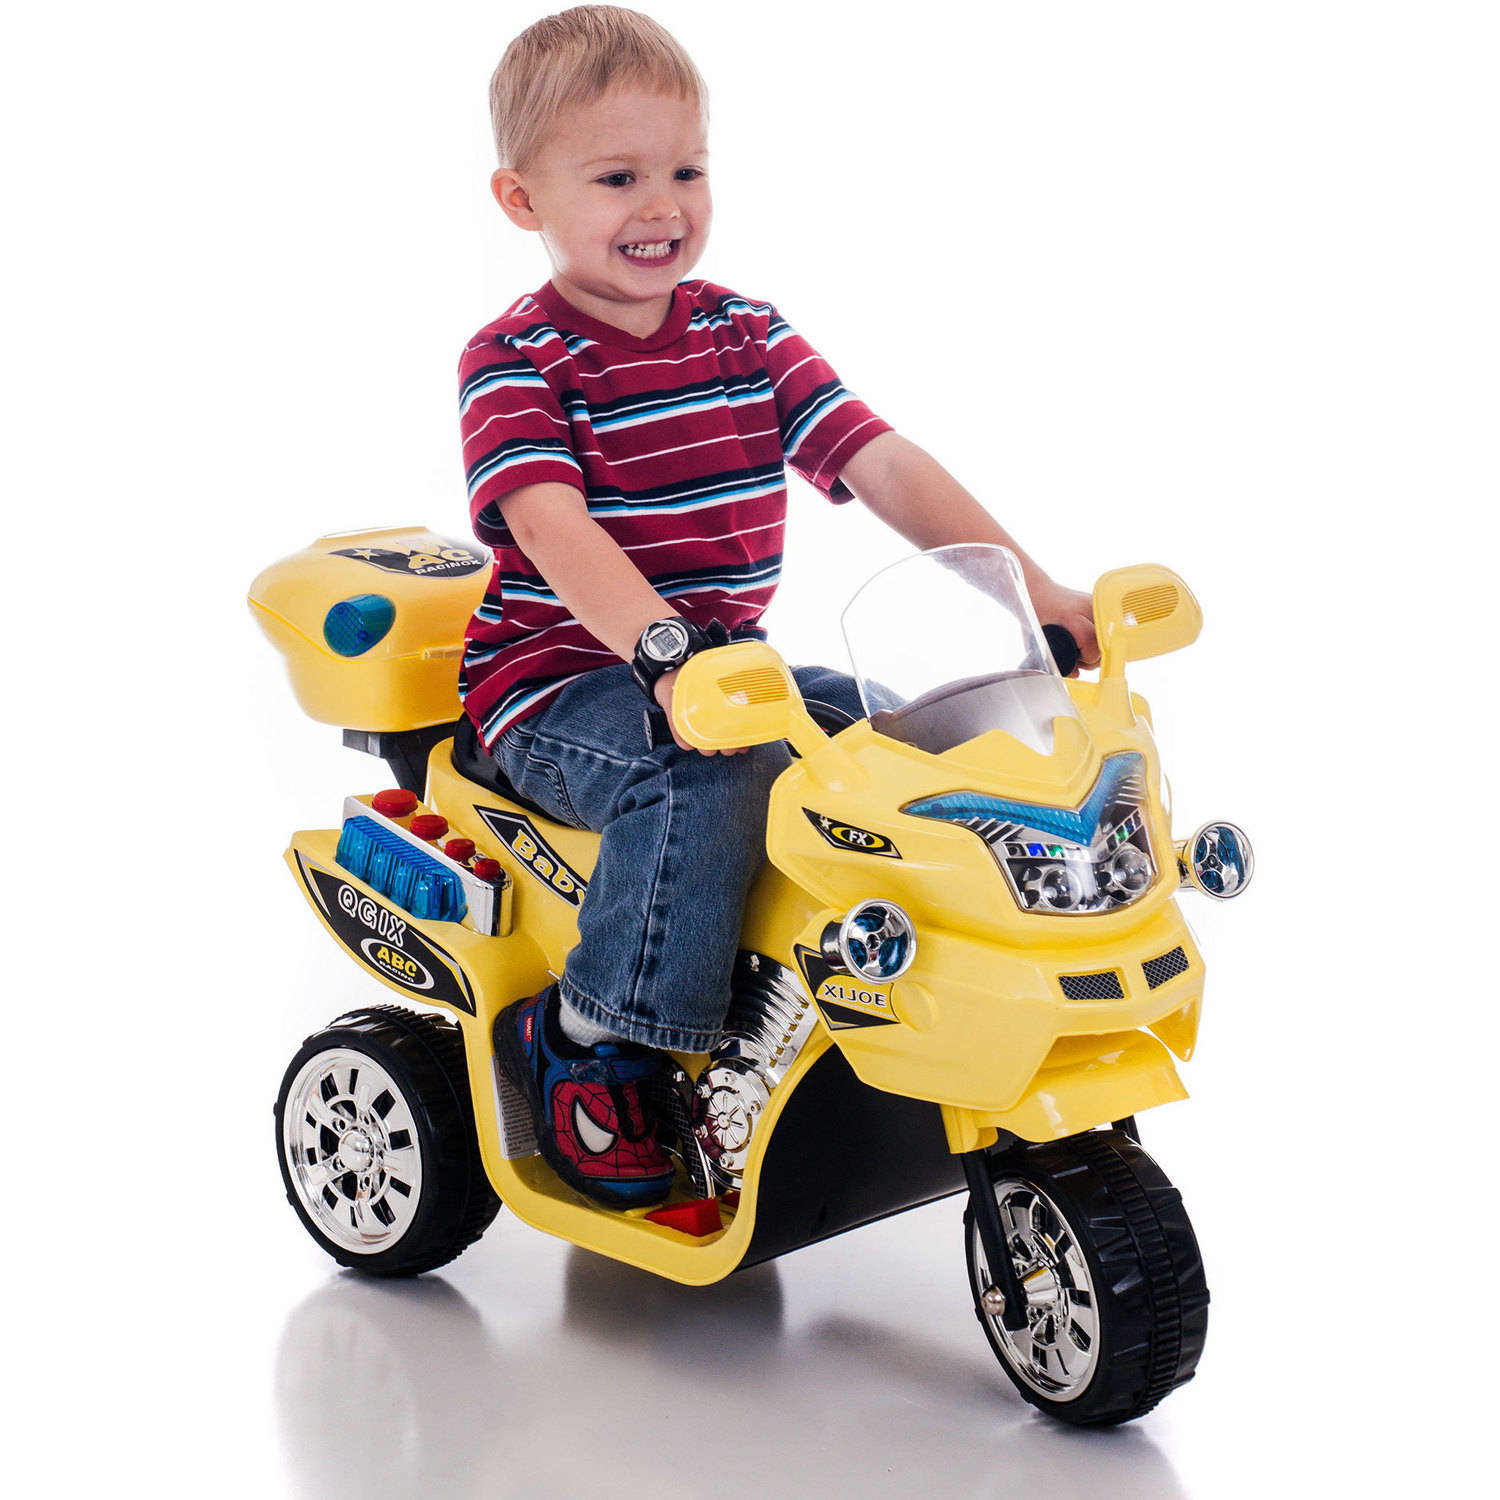 ride on toys for 3 year olds Toys Model Ideas